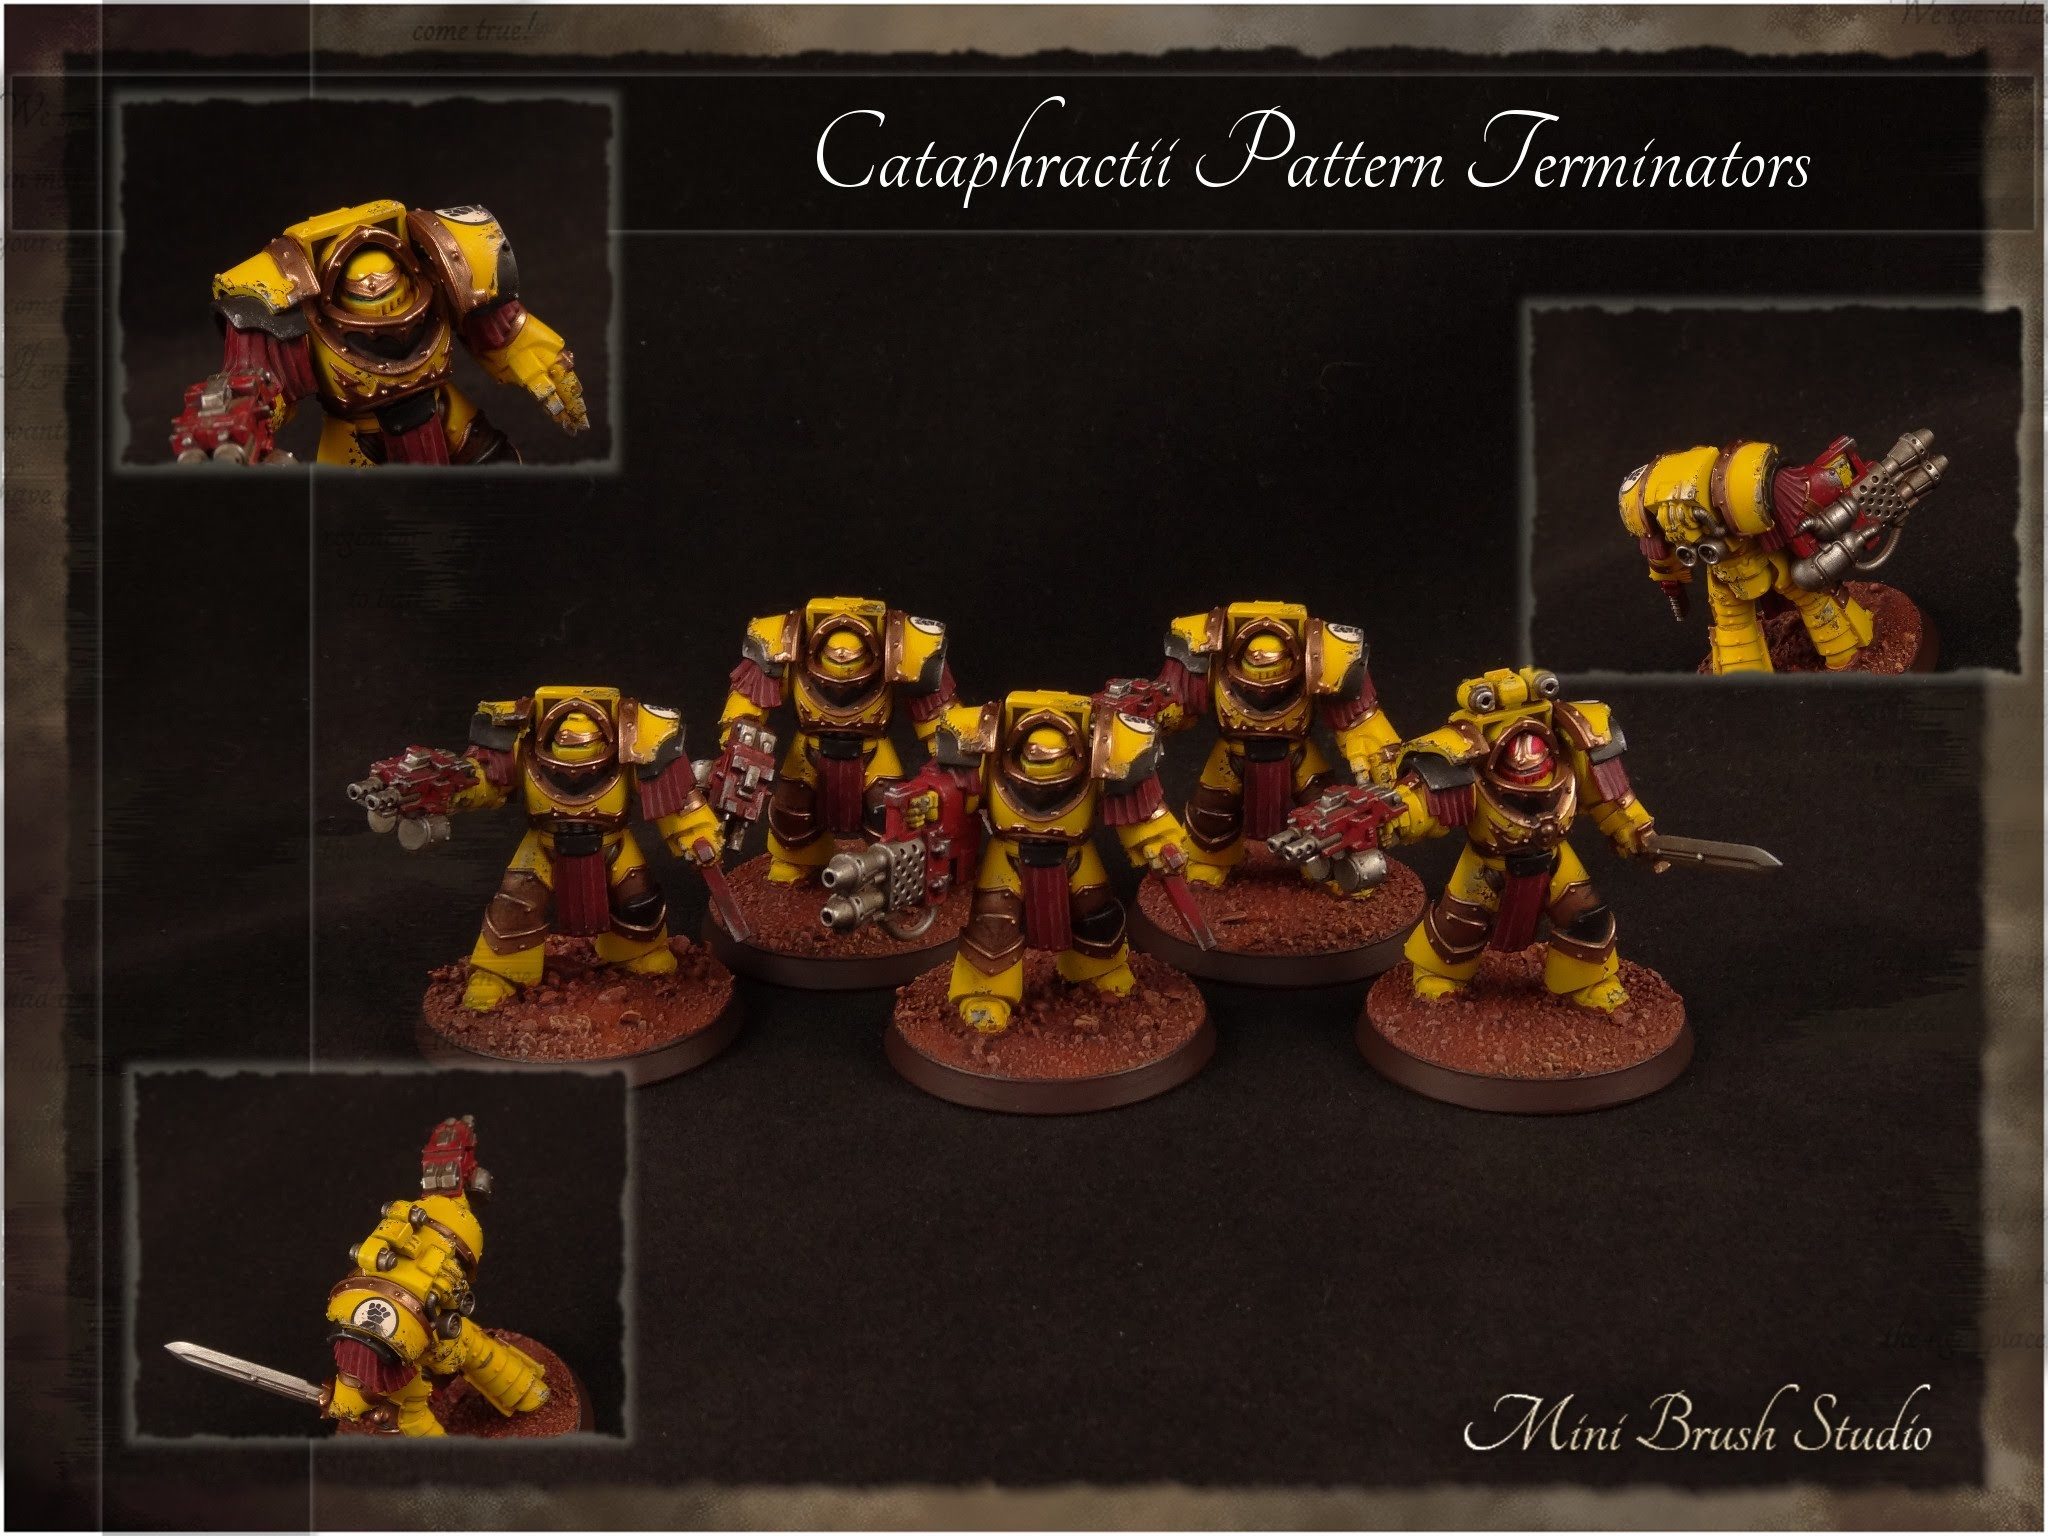 2048x1536 Forge World - Cataphractii Pattern Terminators ( Imperial Fists - Betrayal  at Calth ) - YouTube